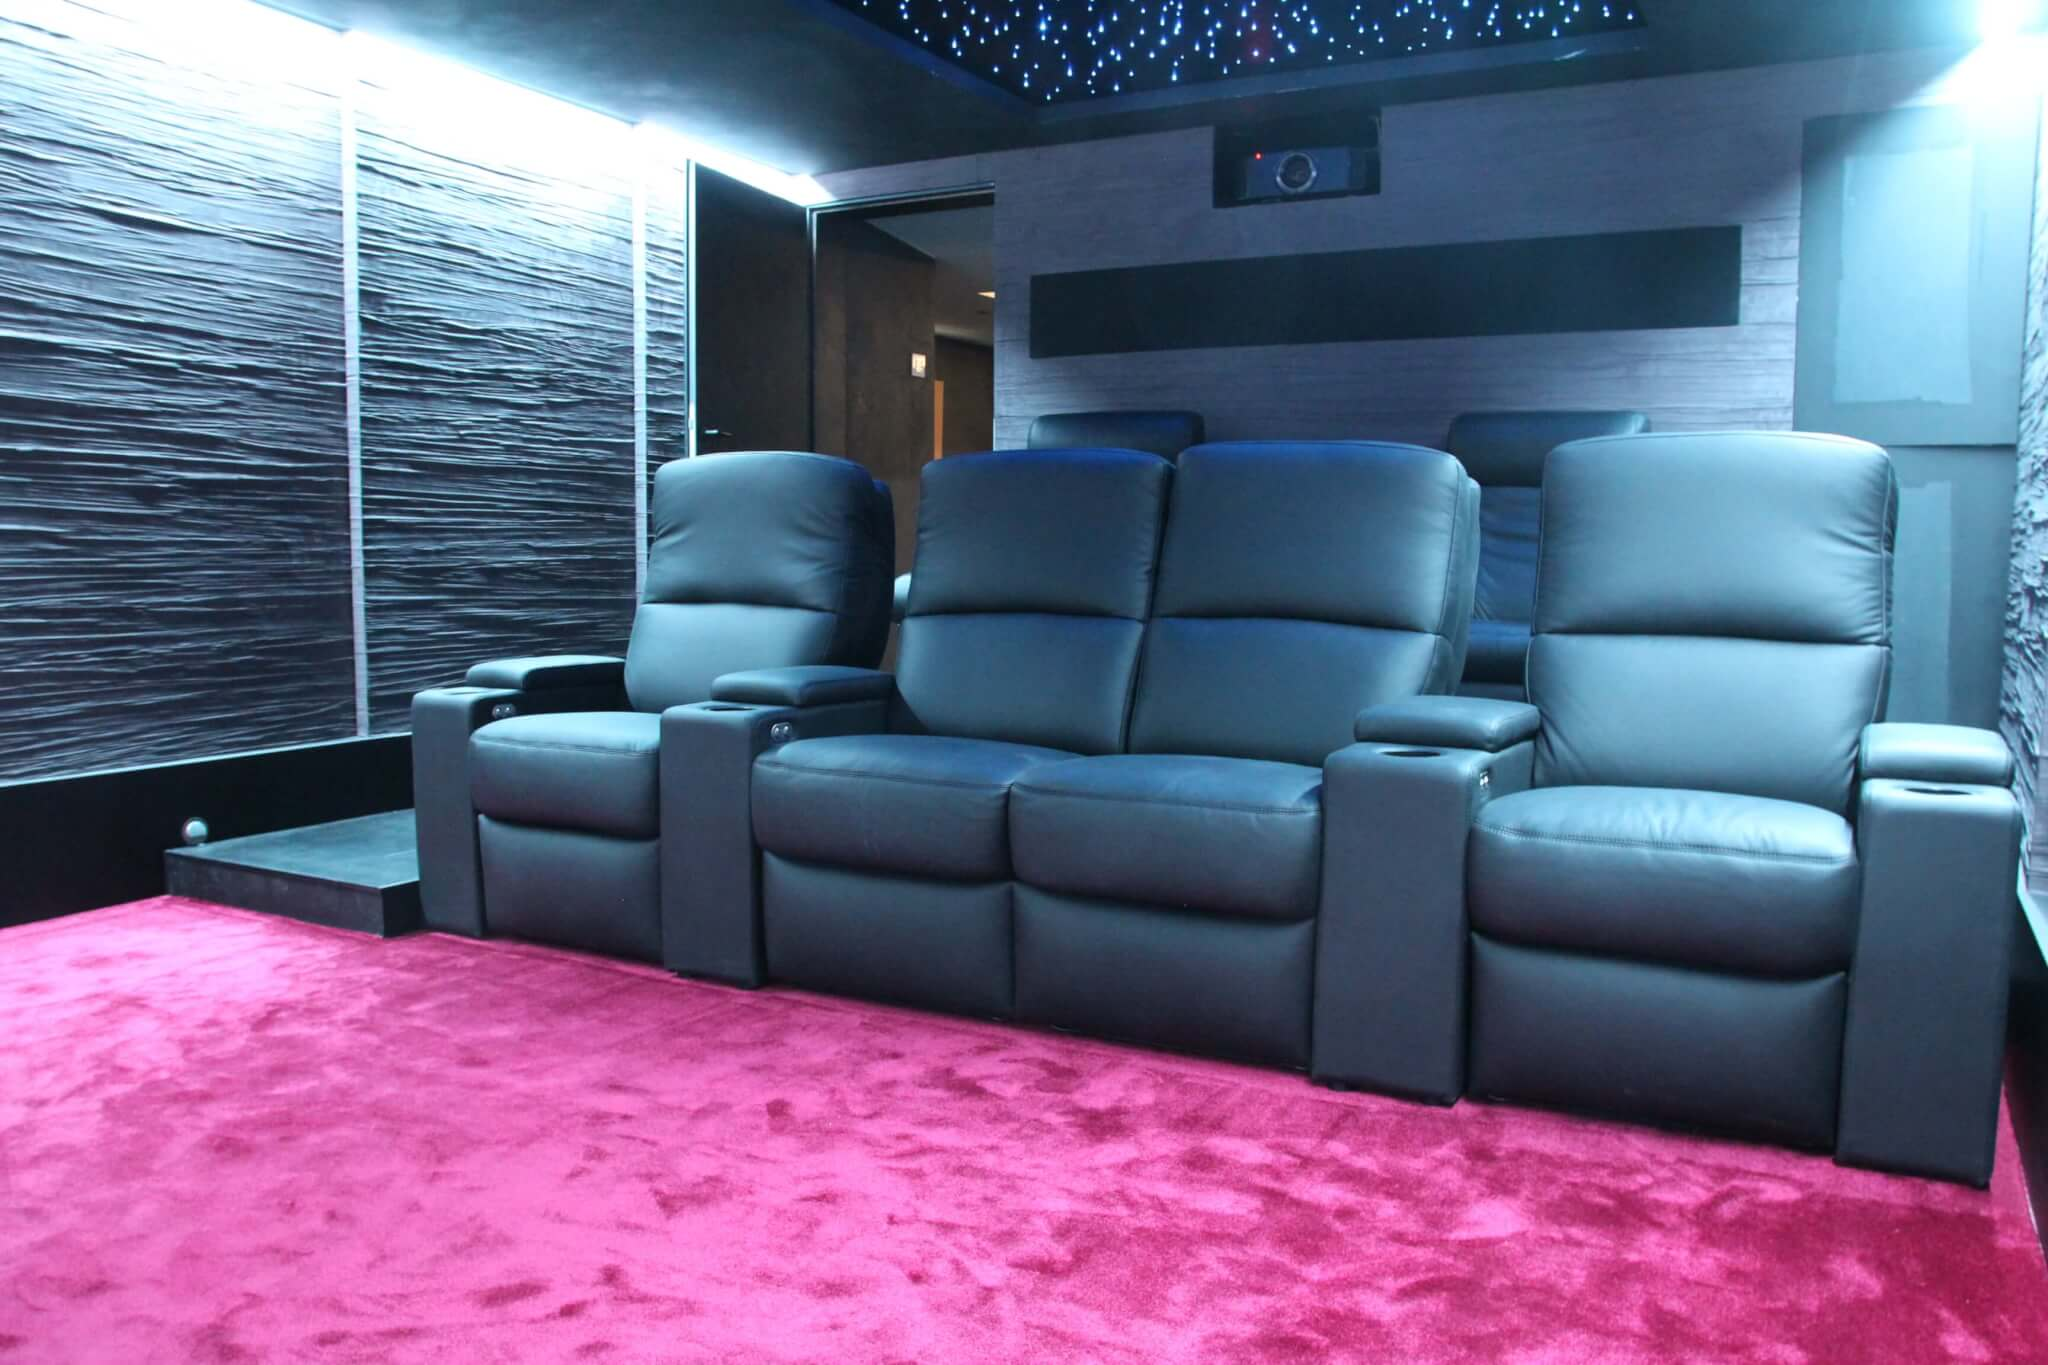 heimkino sofa situmore set sitzer sitzer sessel online bestellen quellede with heimkino sofa. Black Bedroom Furniture Sets. Home Design Ideas